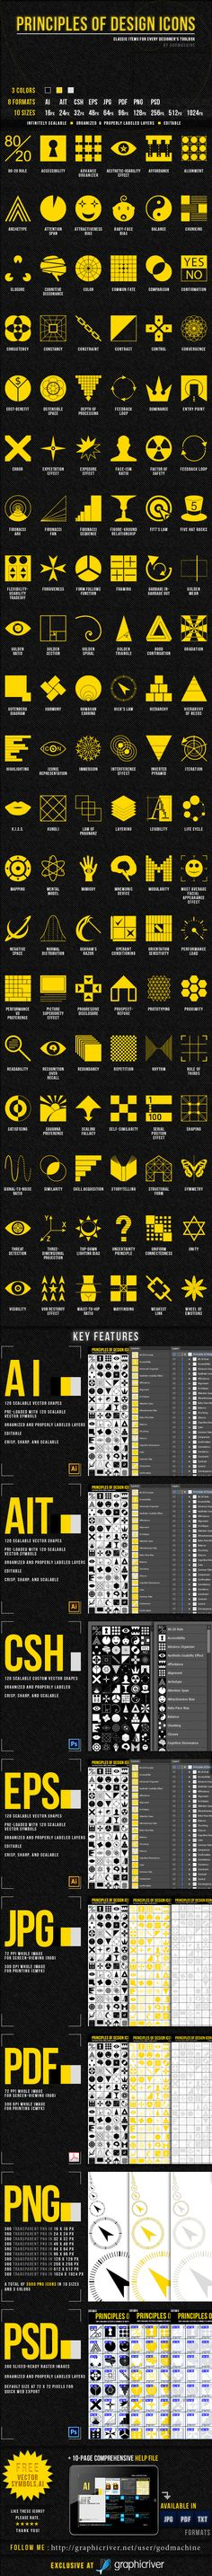 Principles of Design Icons by Jae Aquino, via Behance